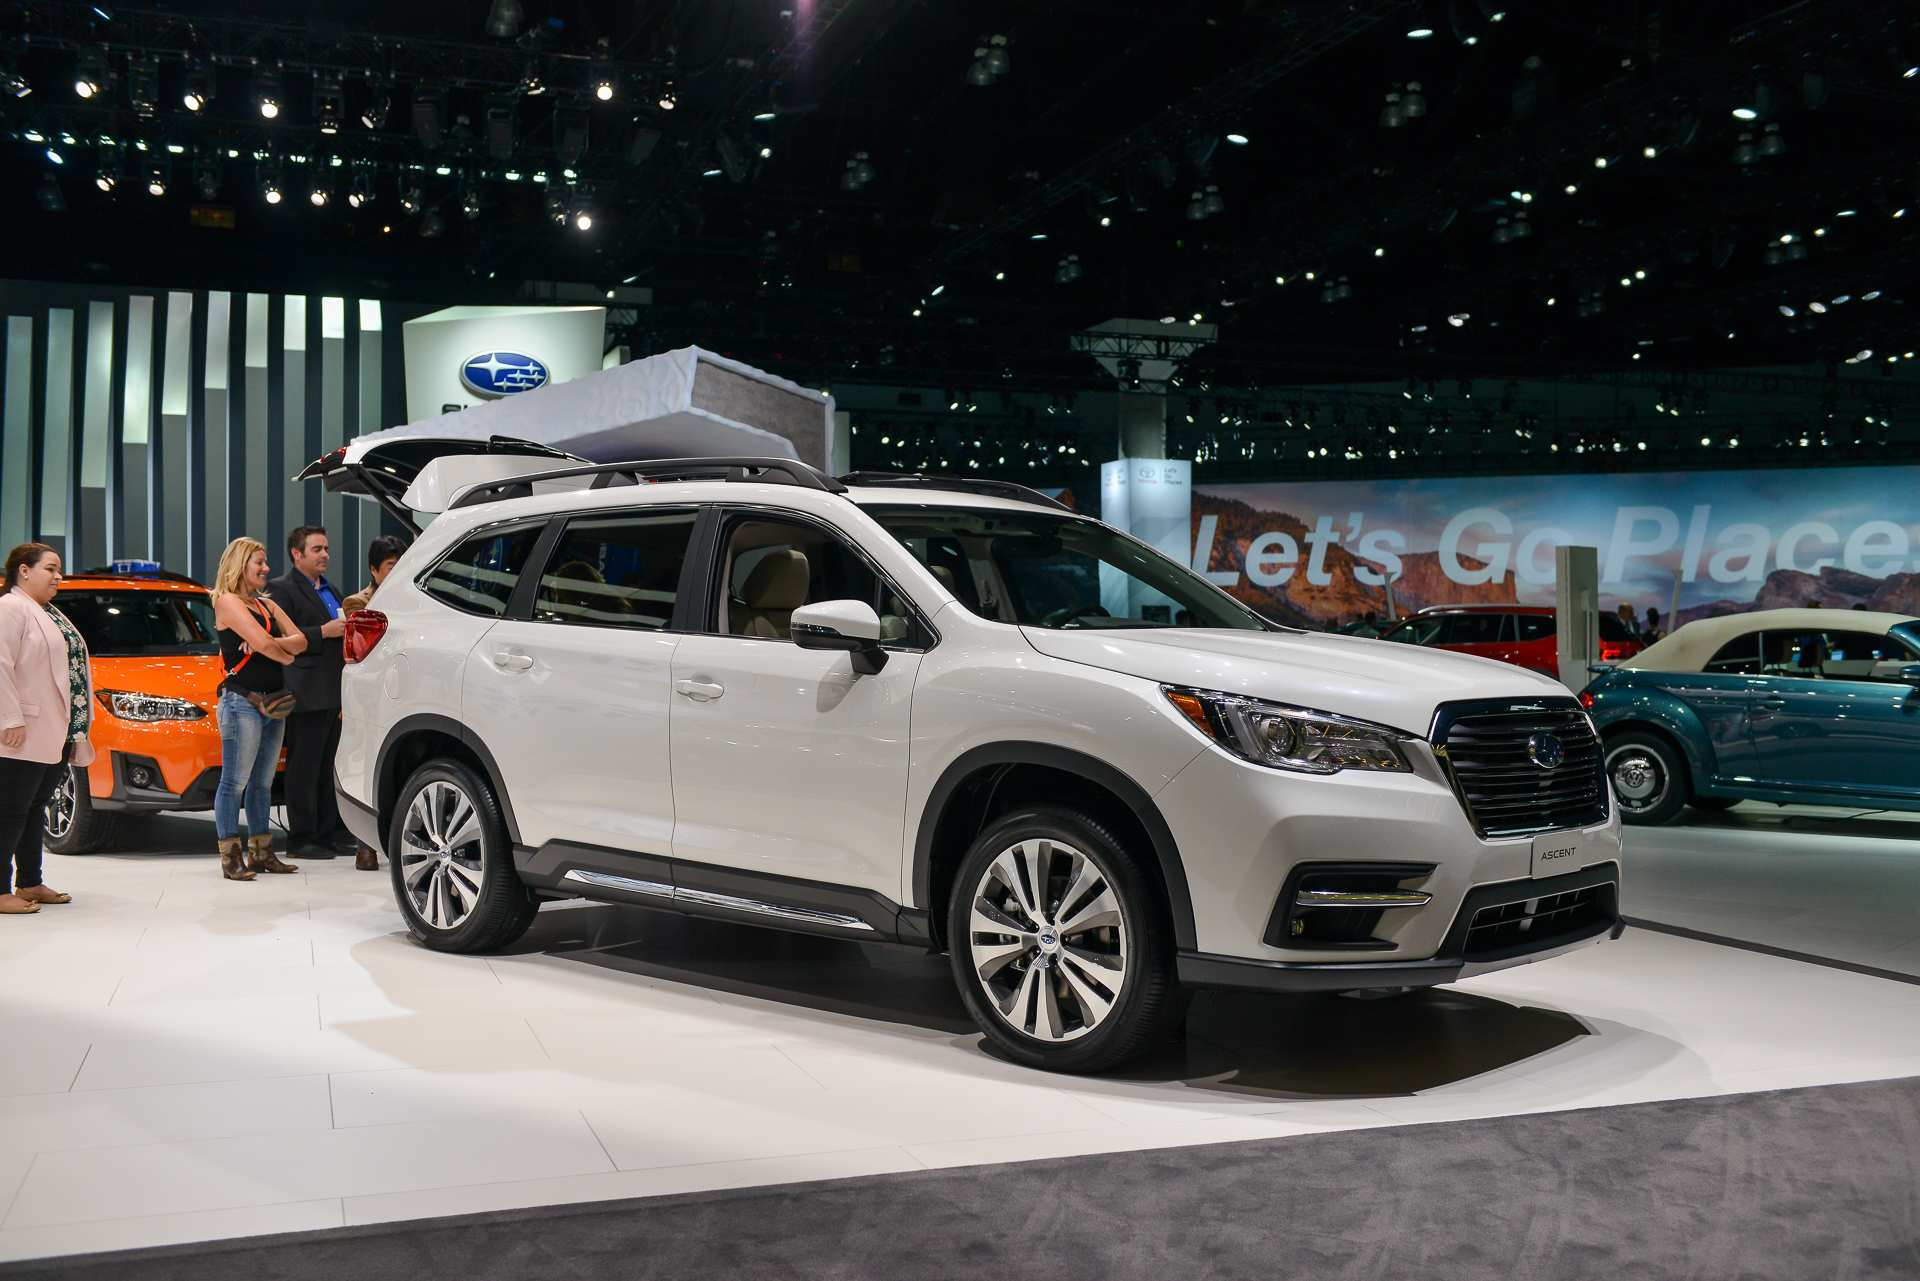 69 All New 2020 Subaru Ascent Gas Mileage Redesign and Concept by 2020 Subaru Ascent Gas Mileage